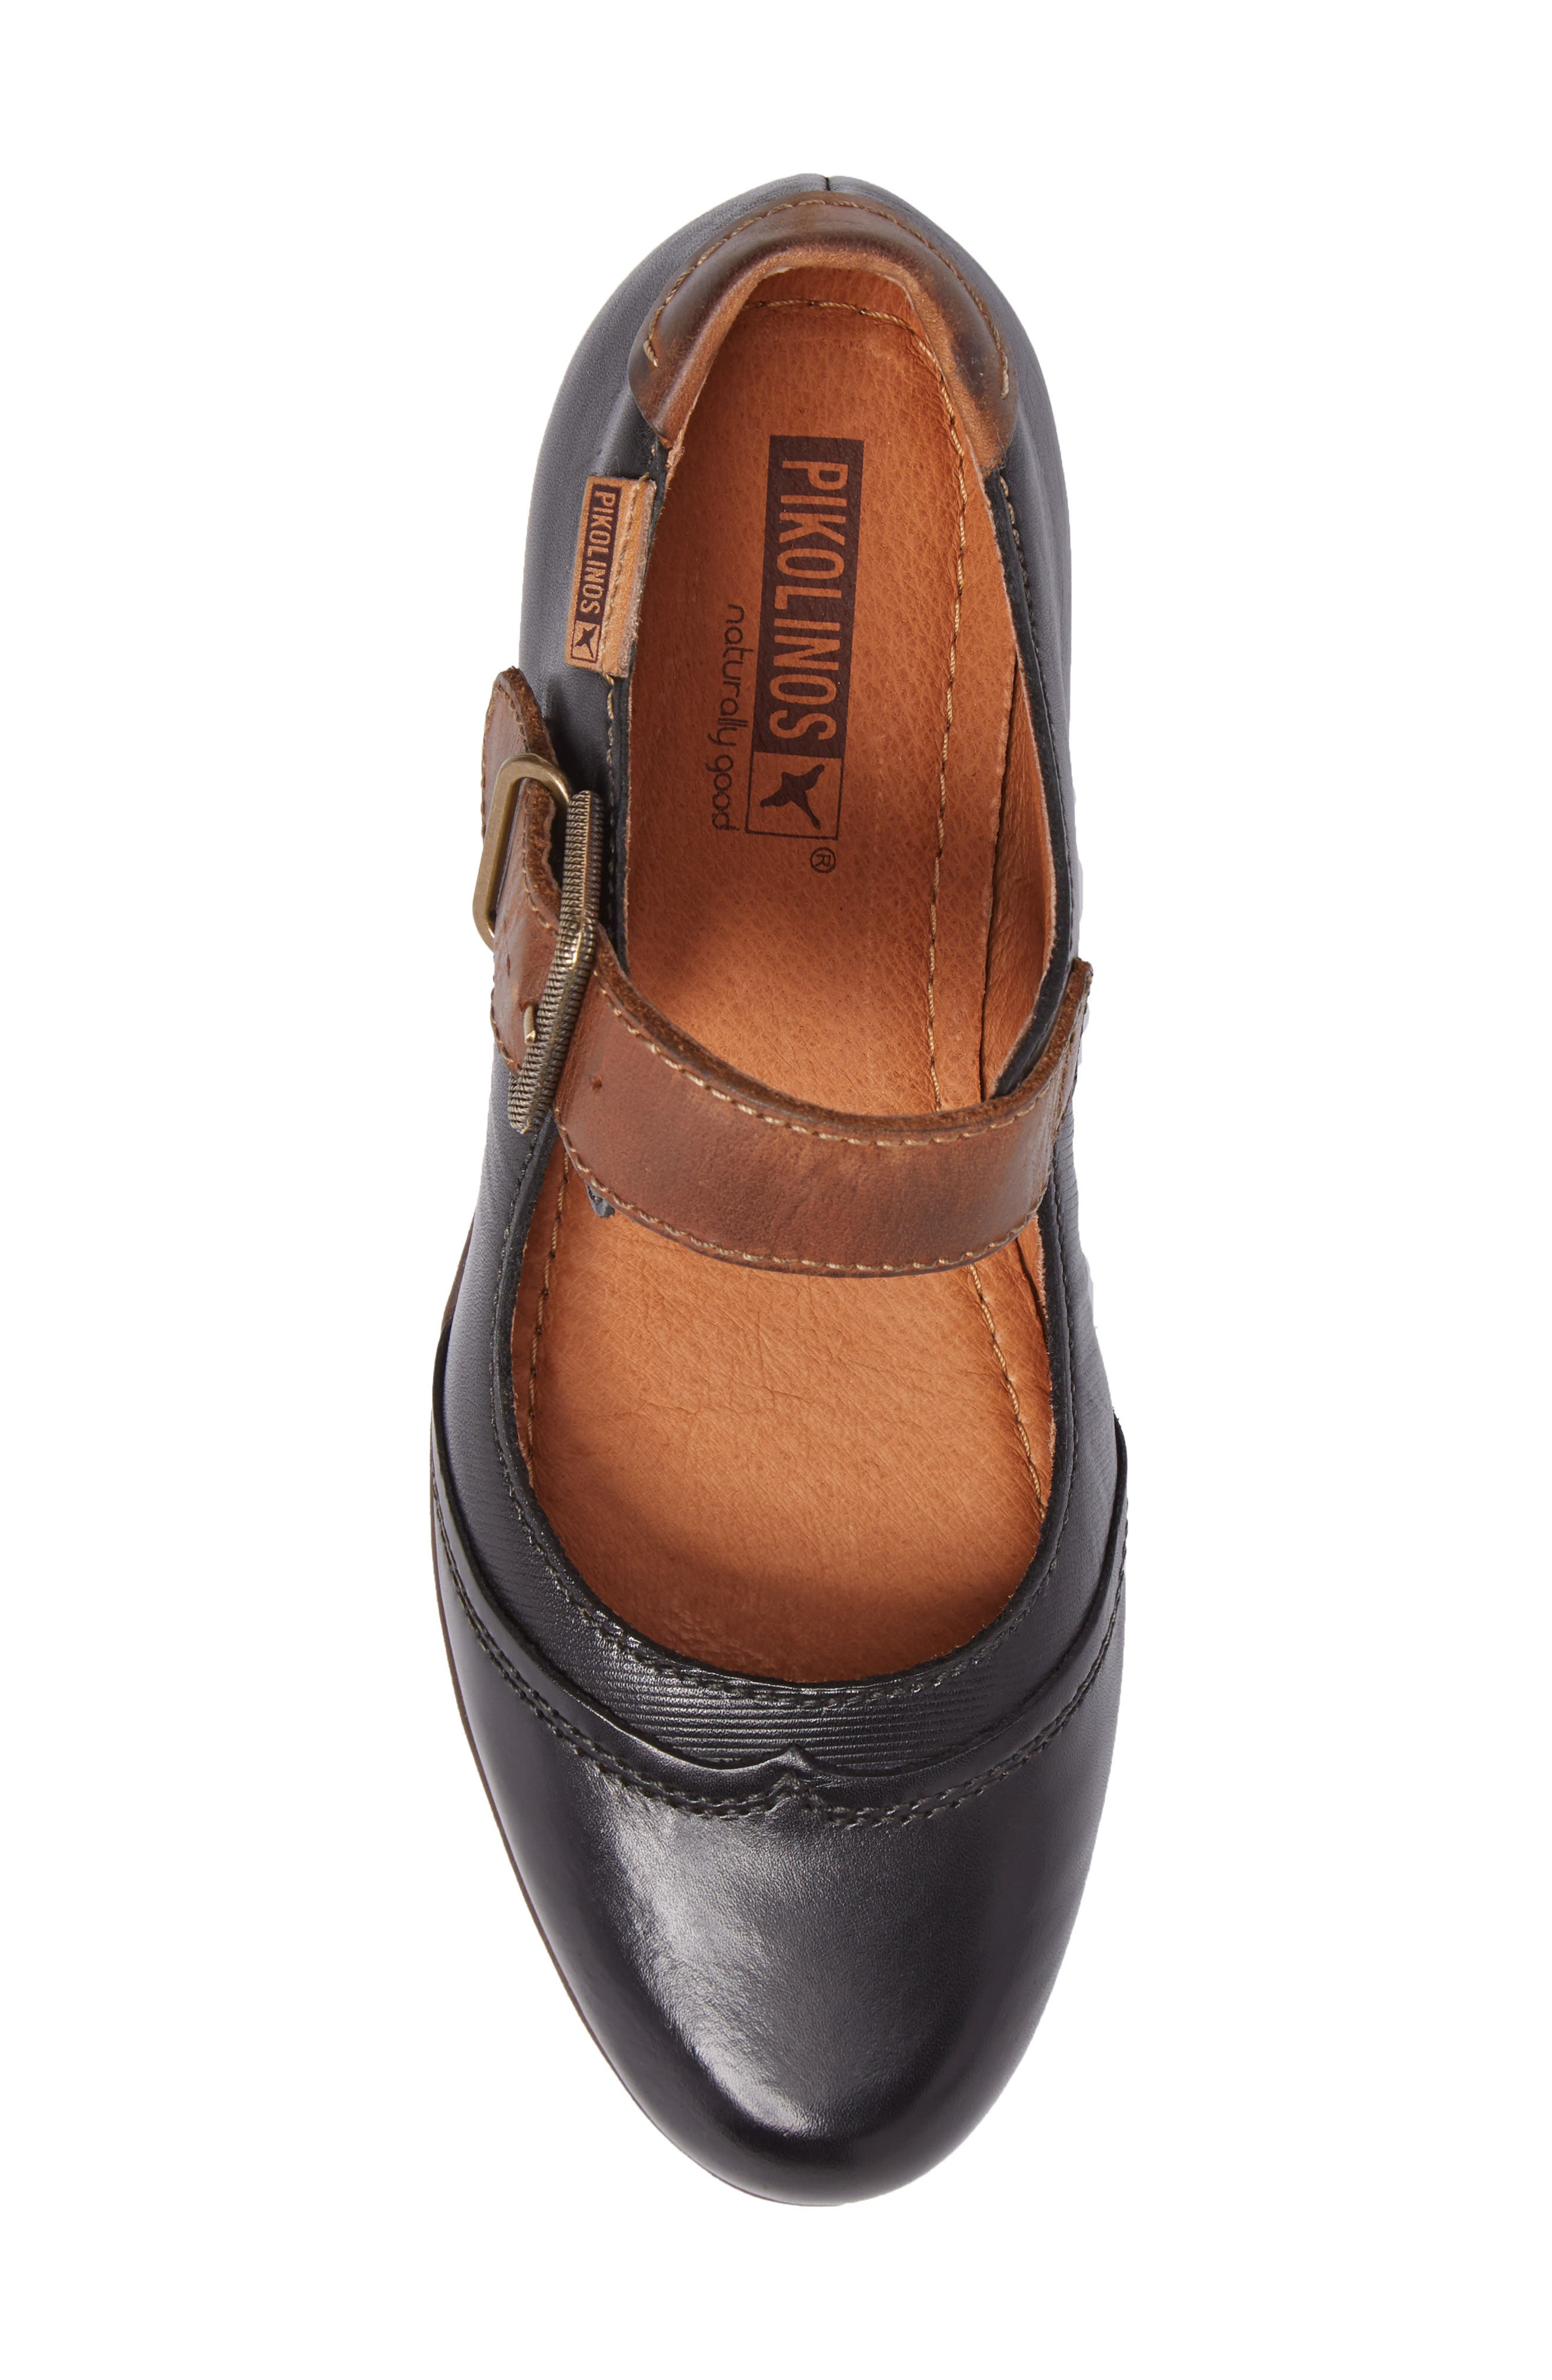 Rotterdam Water Resistant Mary Jane Pump,                             Alternate thumbnail 5, color,                             001